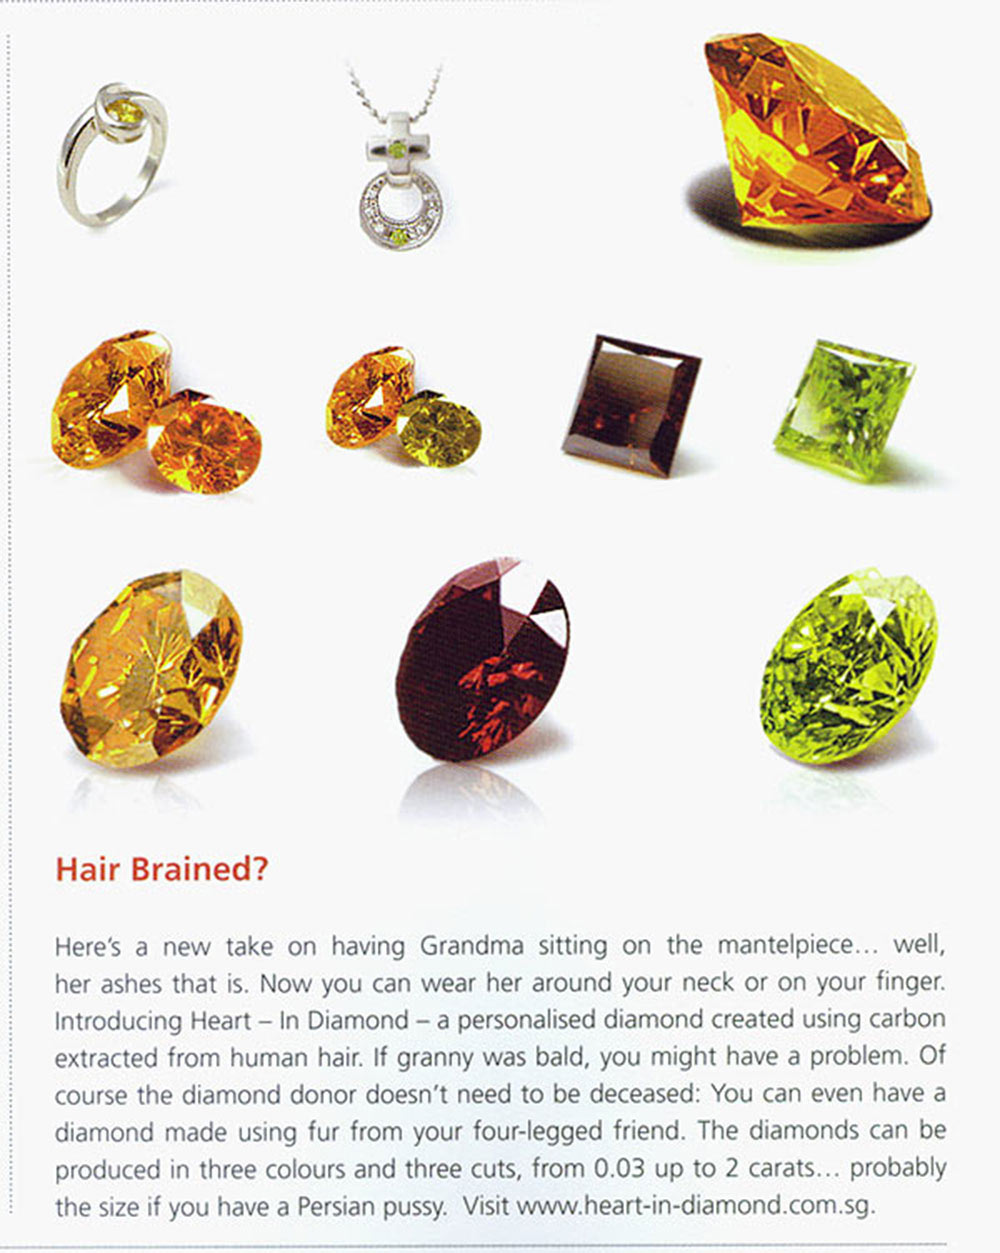 Orange, yellow, red and green diamonds from human hair and pets hair